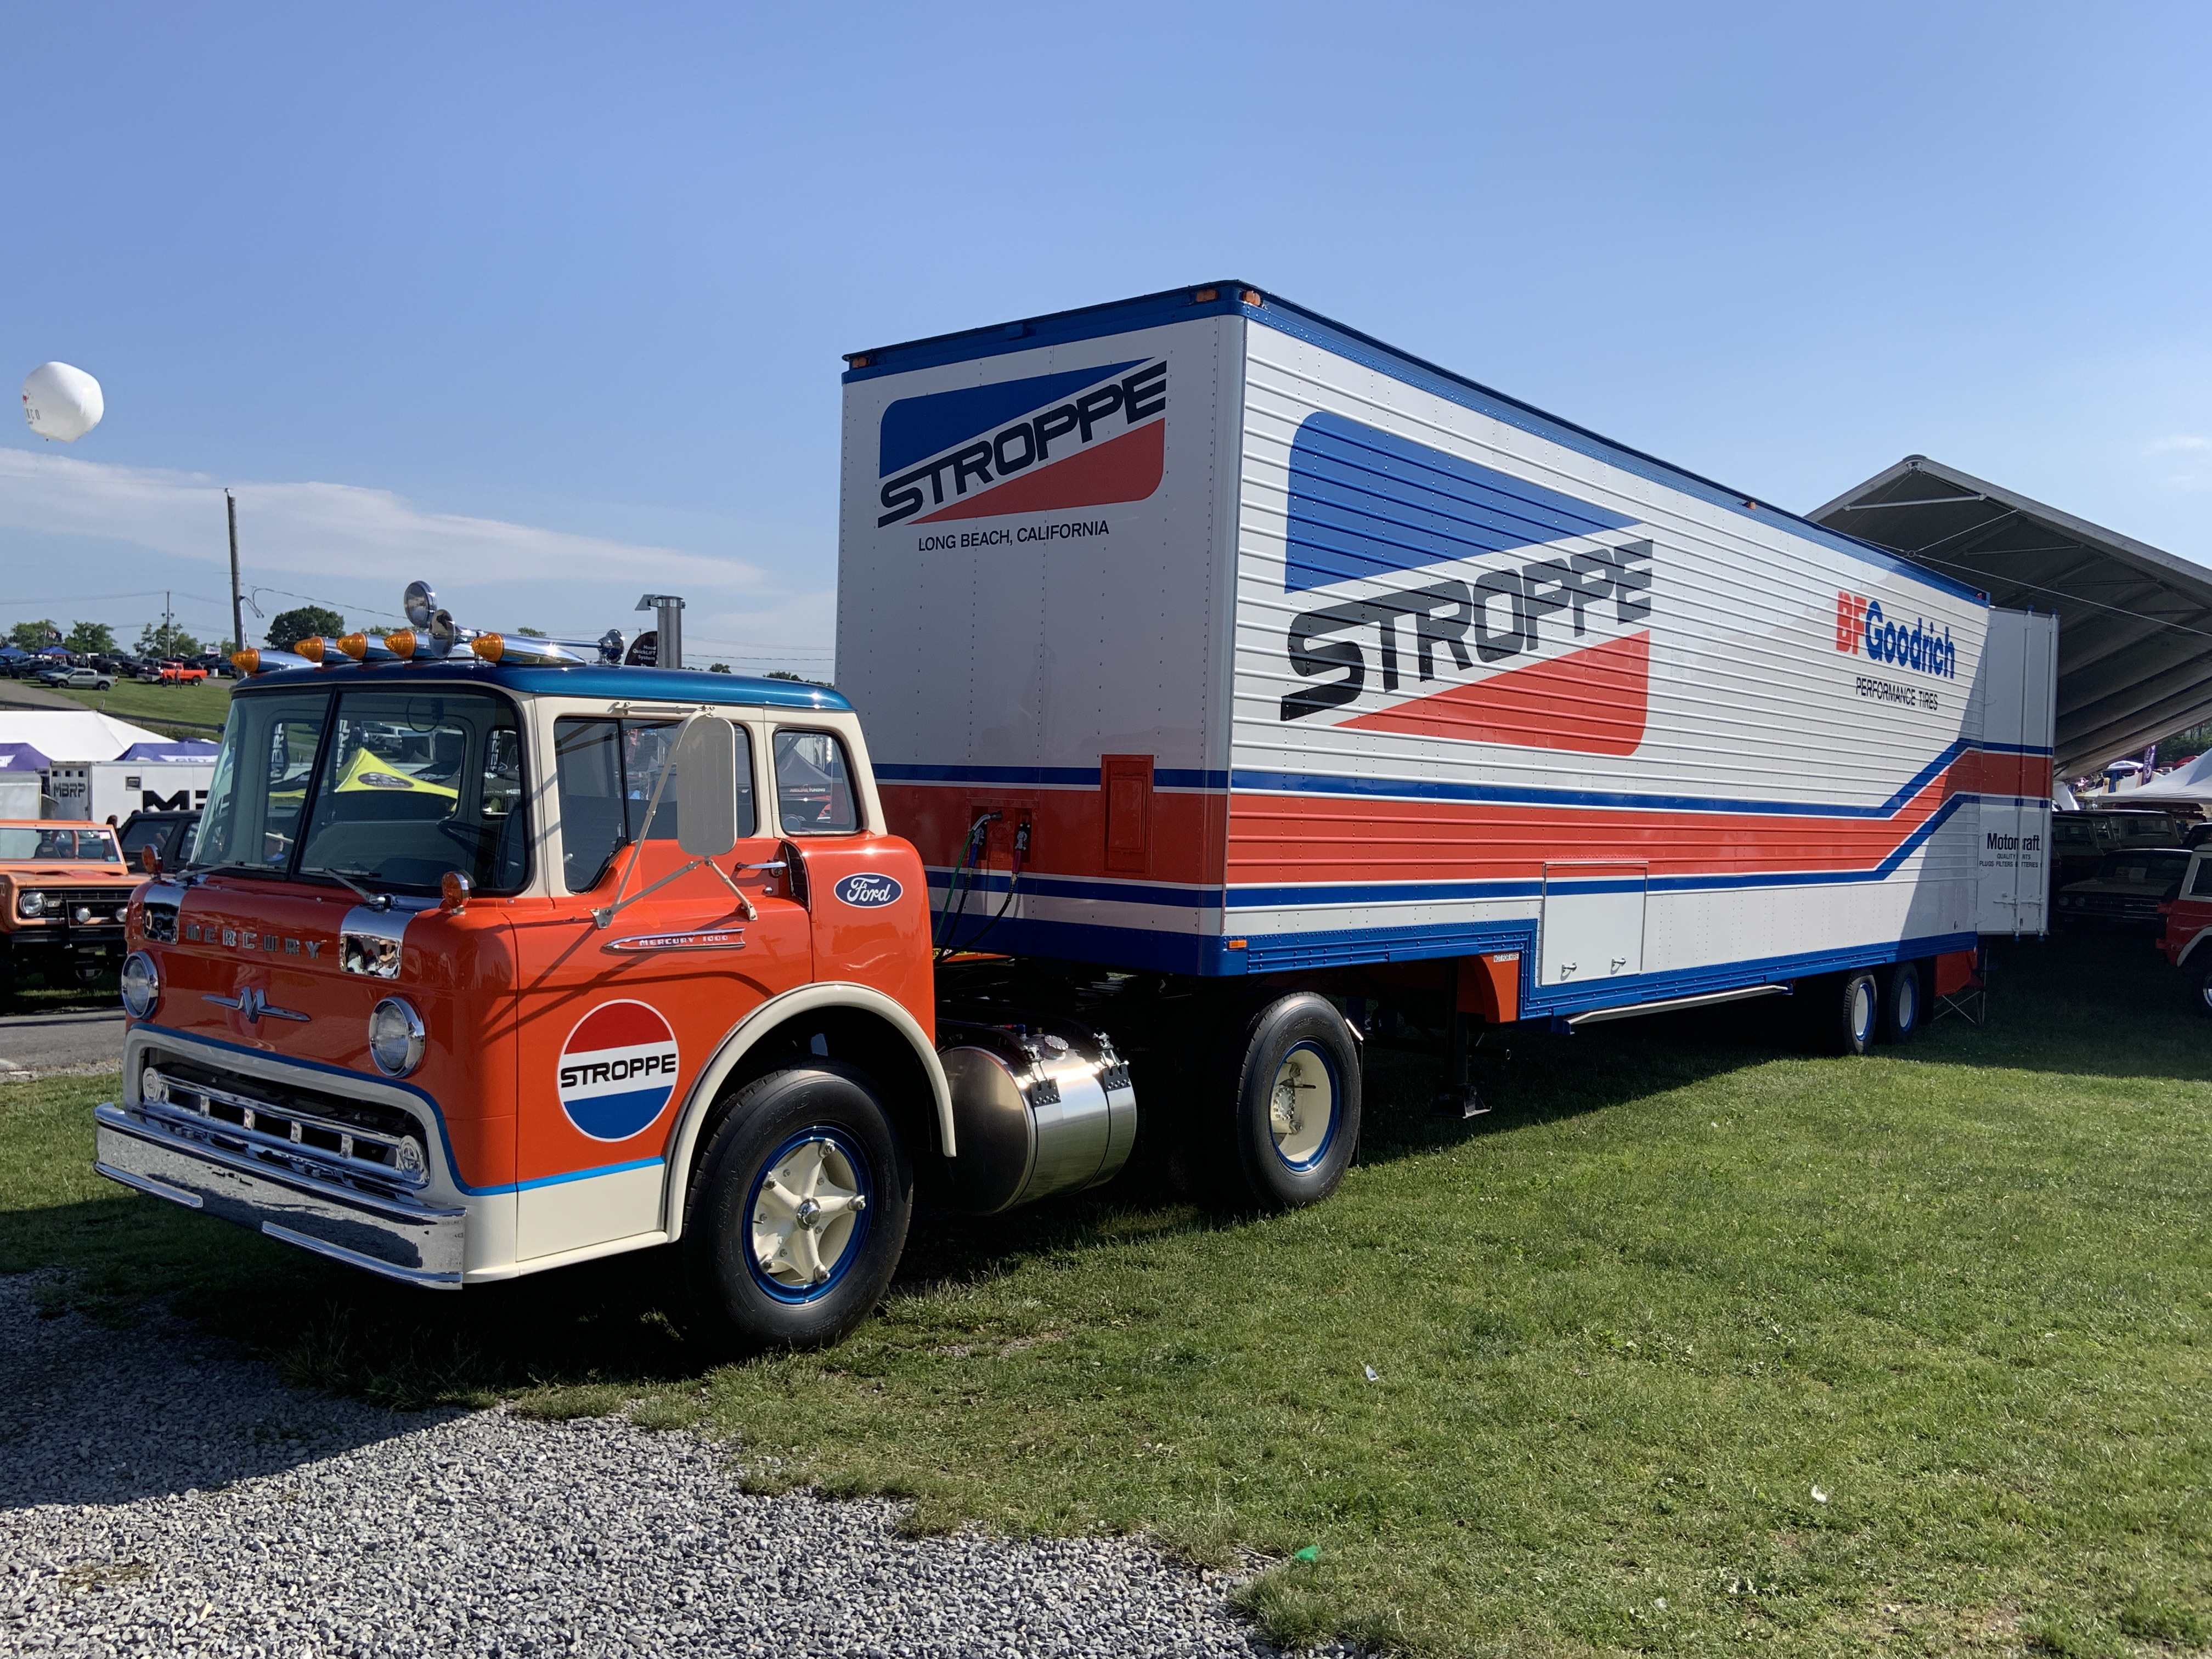 2021 Fords At Carlisle Photo Coverage: More Blue Oval Beauties By The Dozen Including Vintage Race Cars, Rigs, and More!